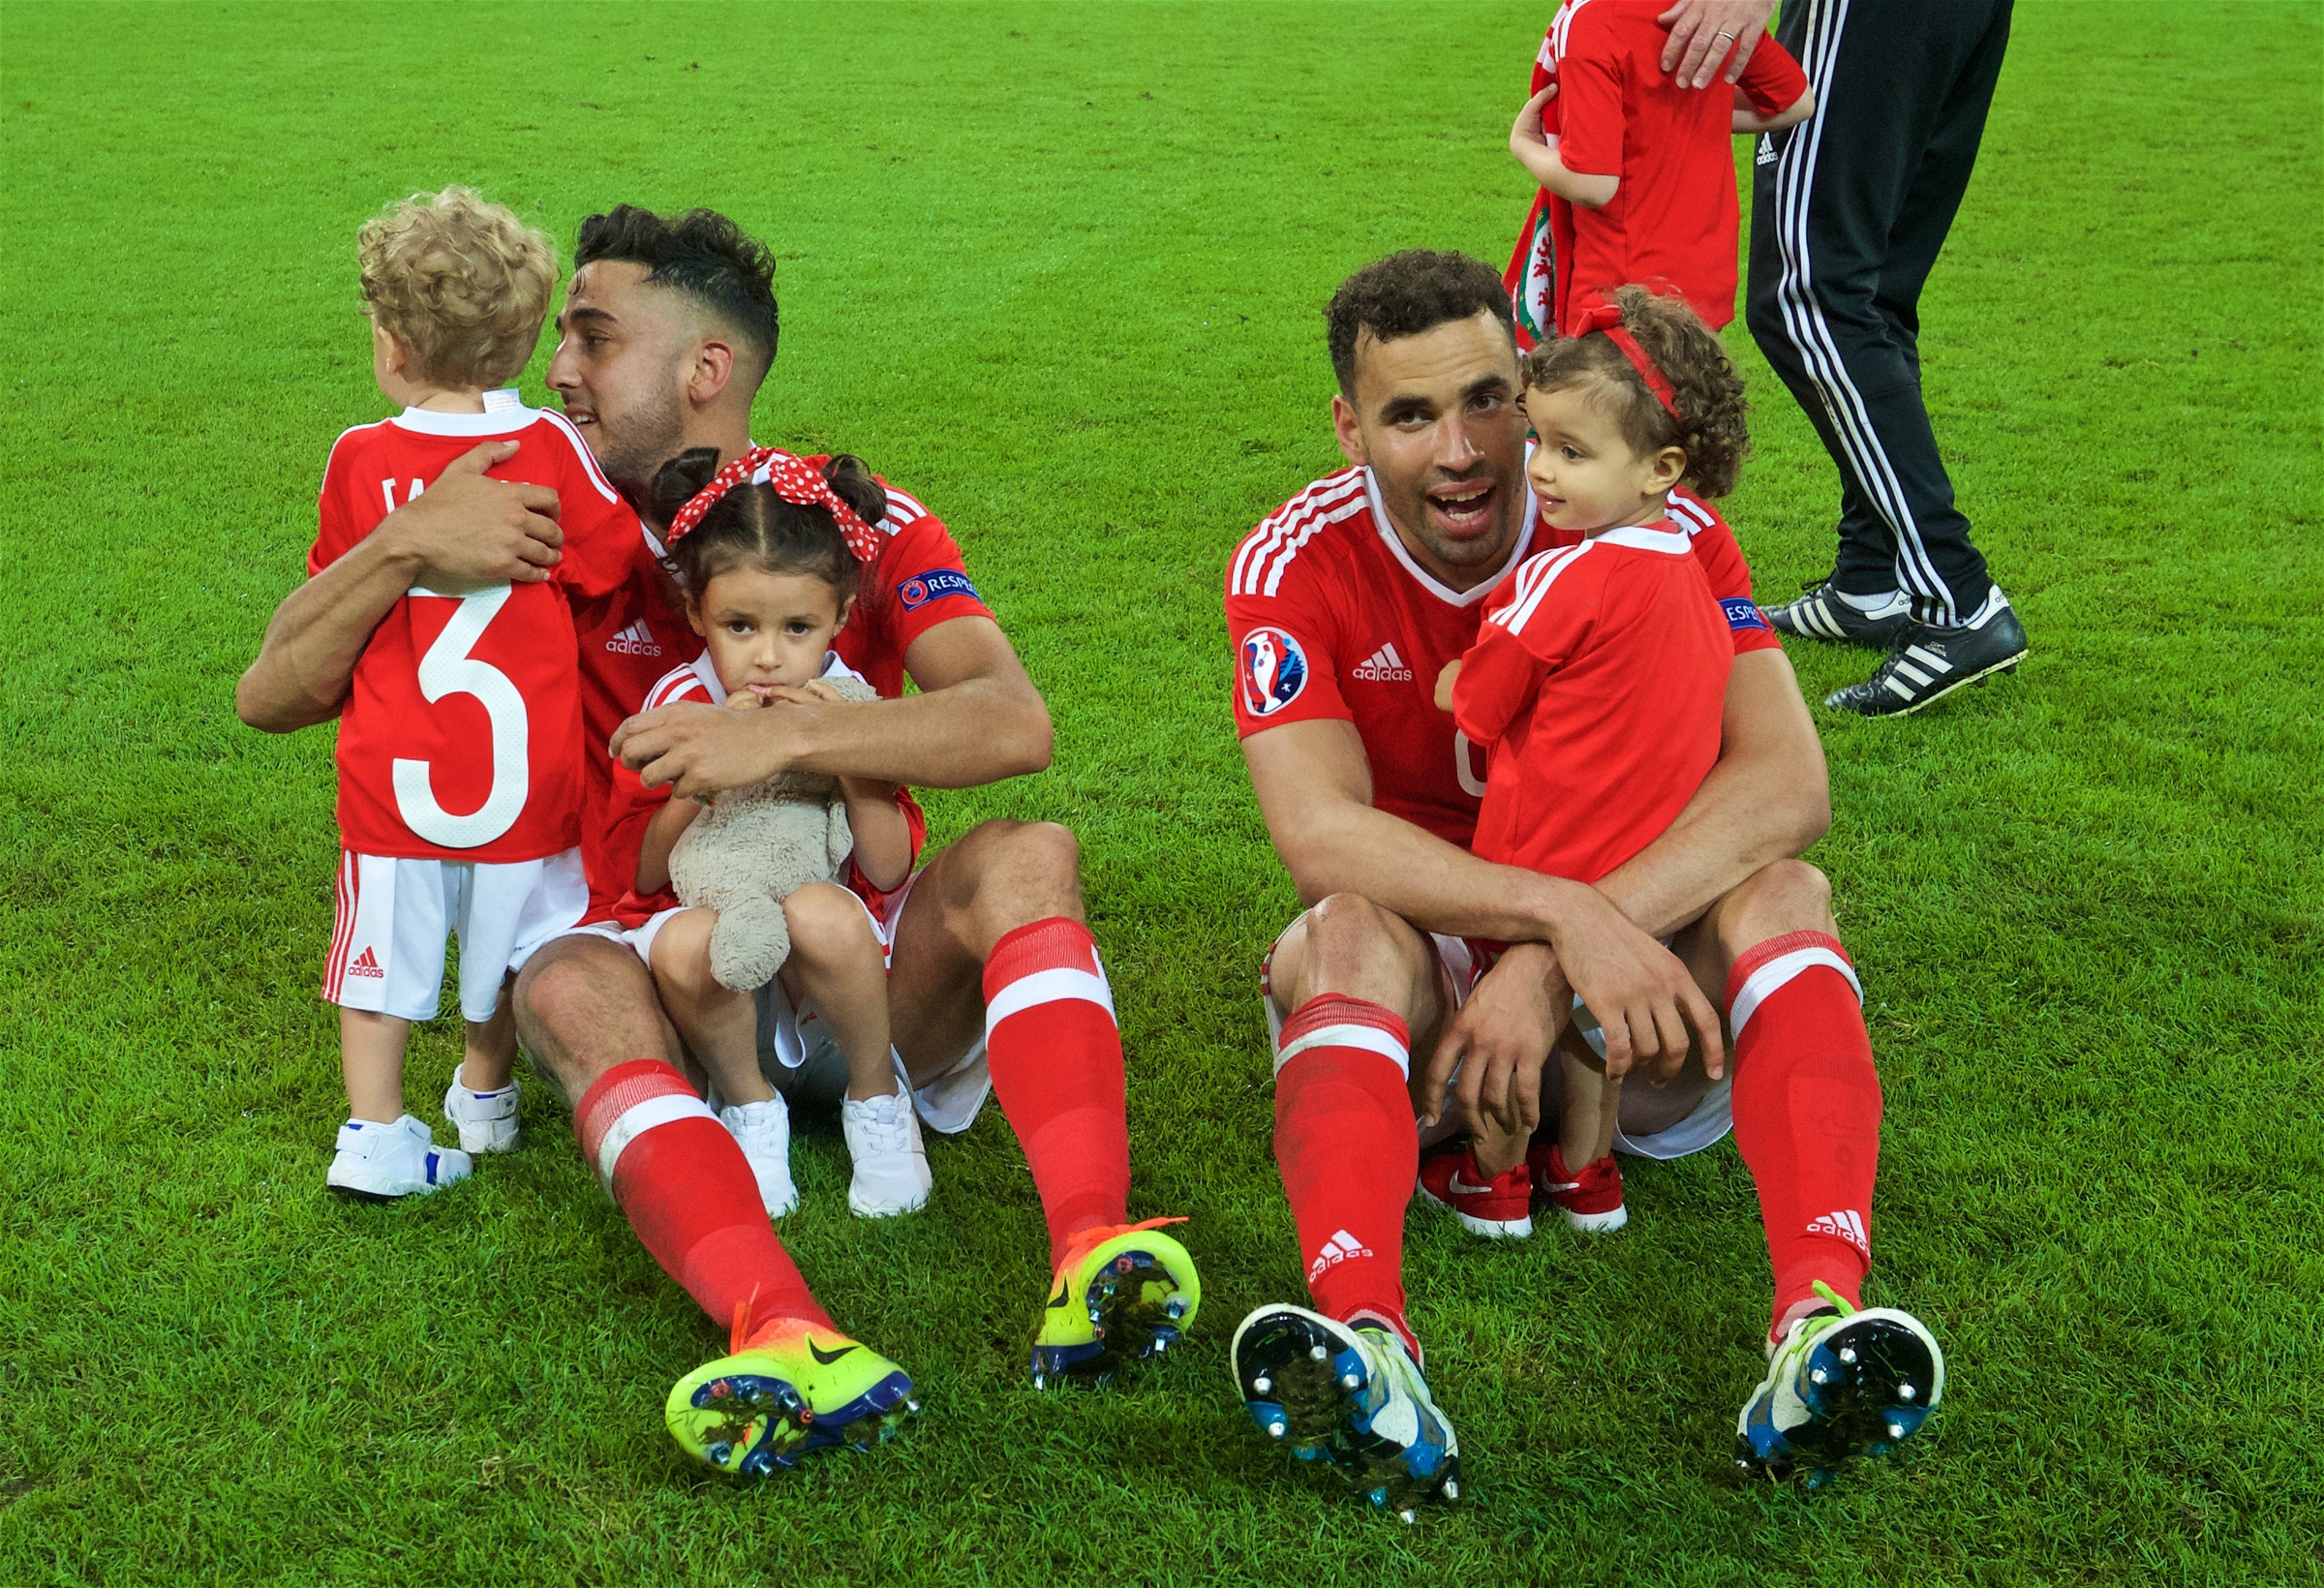 This cute video proves Wales' Euro 2016 efforts made kids fall in love with football